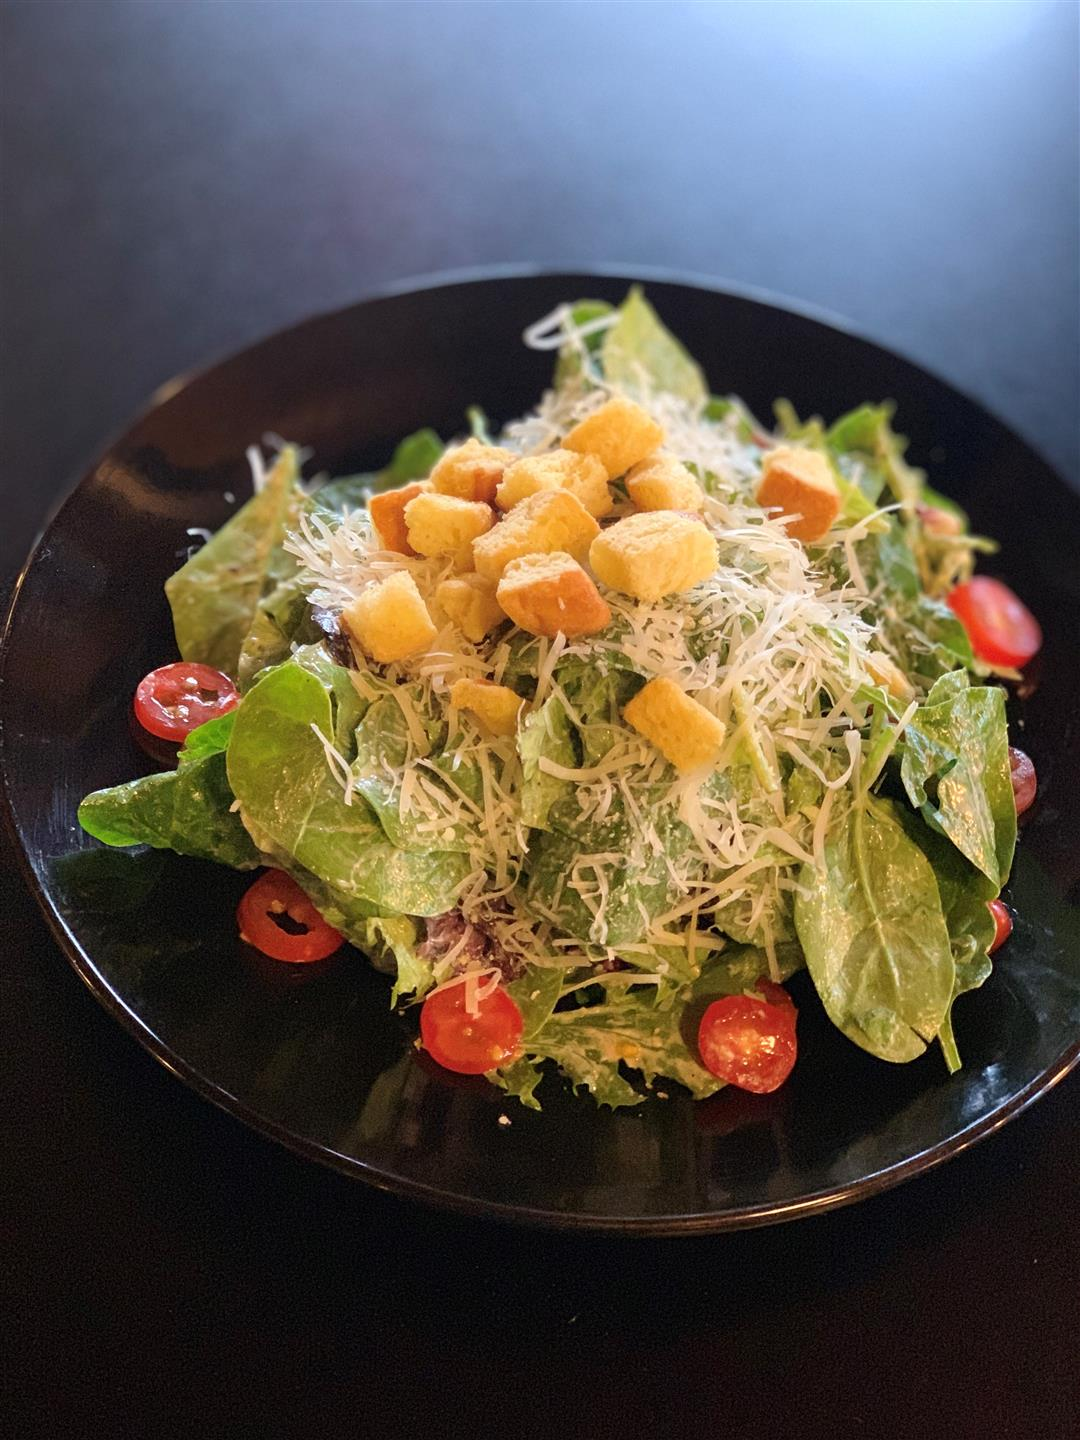 caesar salad with shredded parmesean cheese, croutons and tomatoes